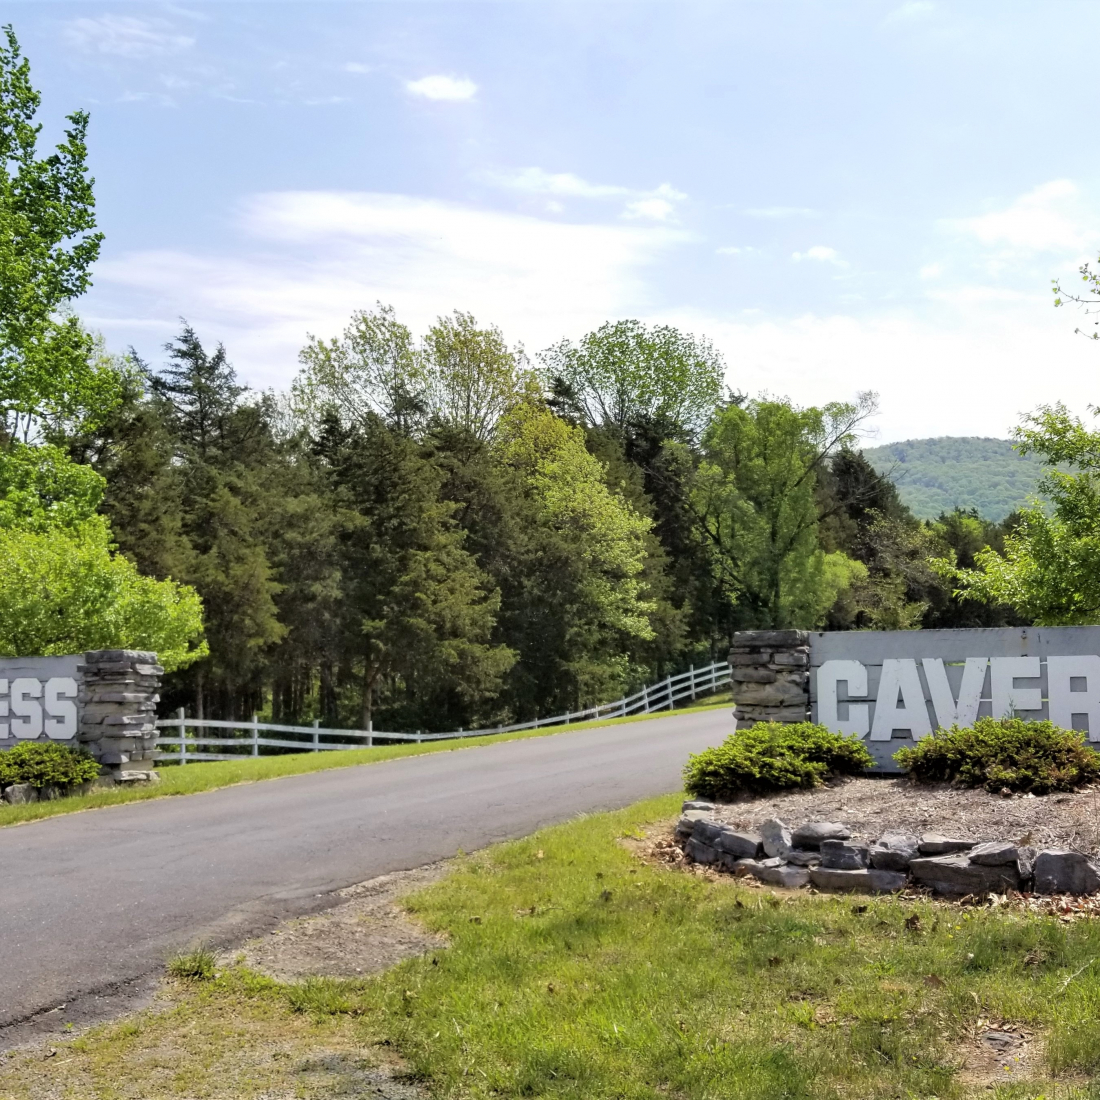 Stay & Explore Endless Caverns Campground In Virginia